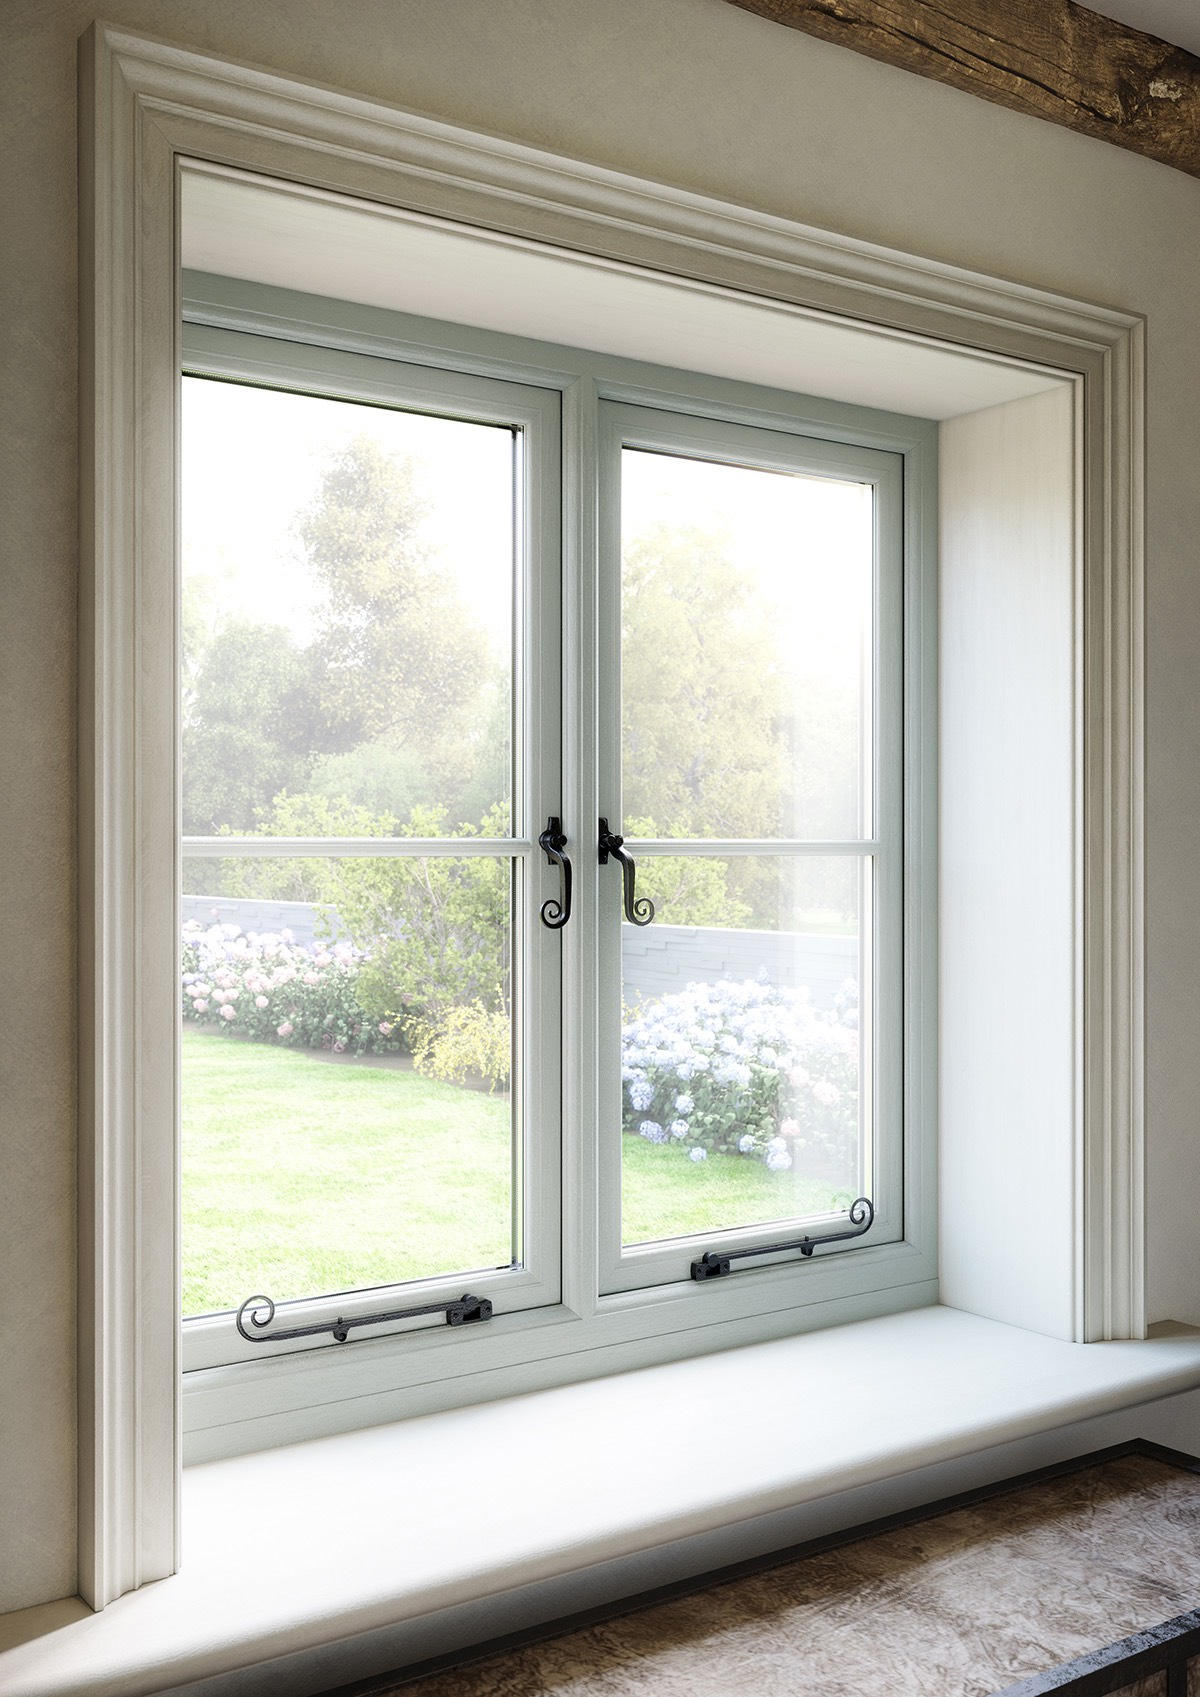 Upvc flush casement windows bradford leeds upvc windows for Upvc french doors leeds